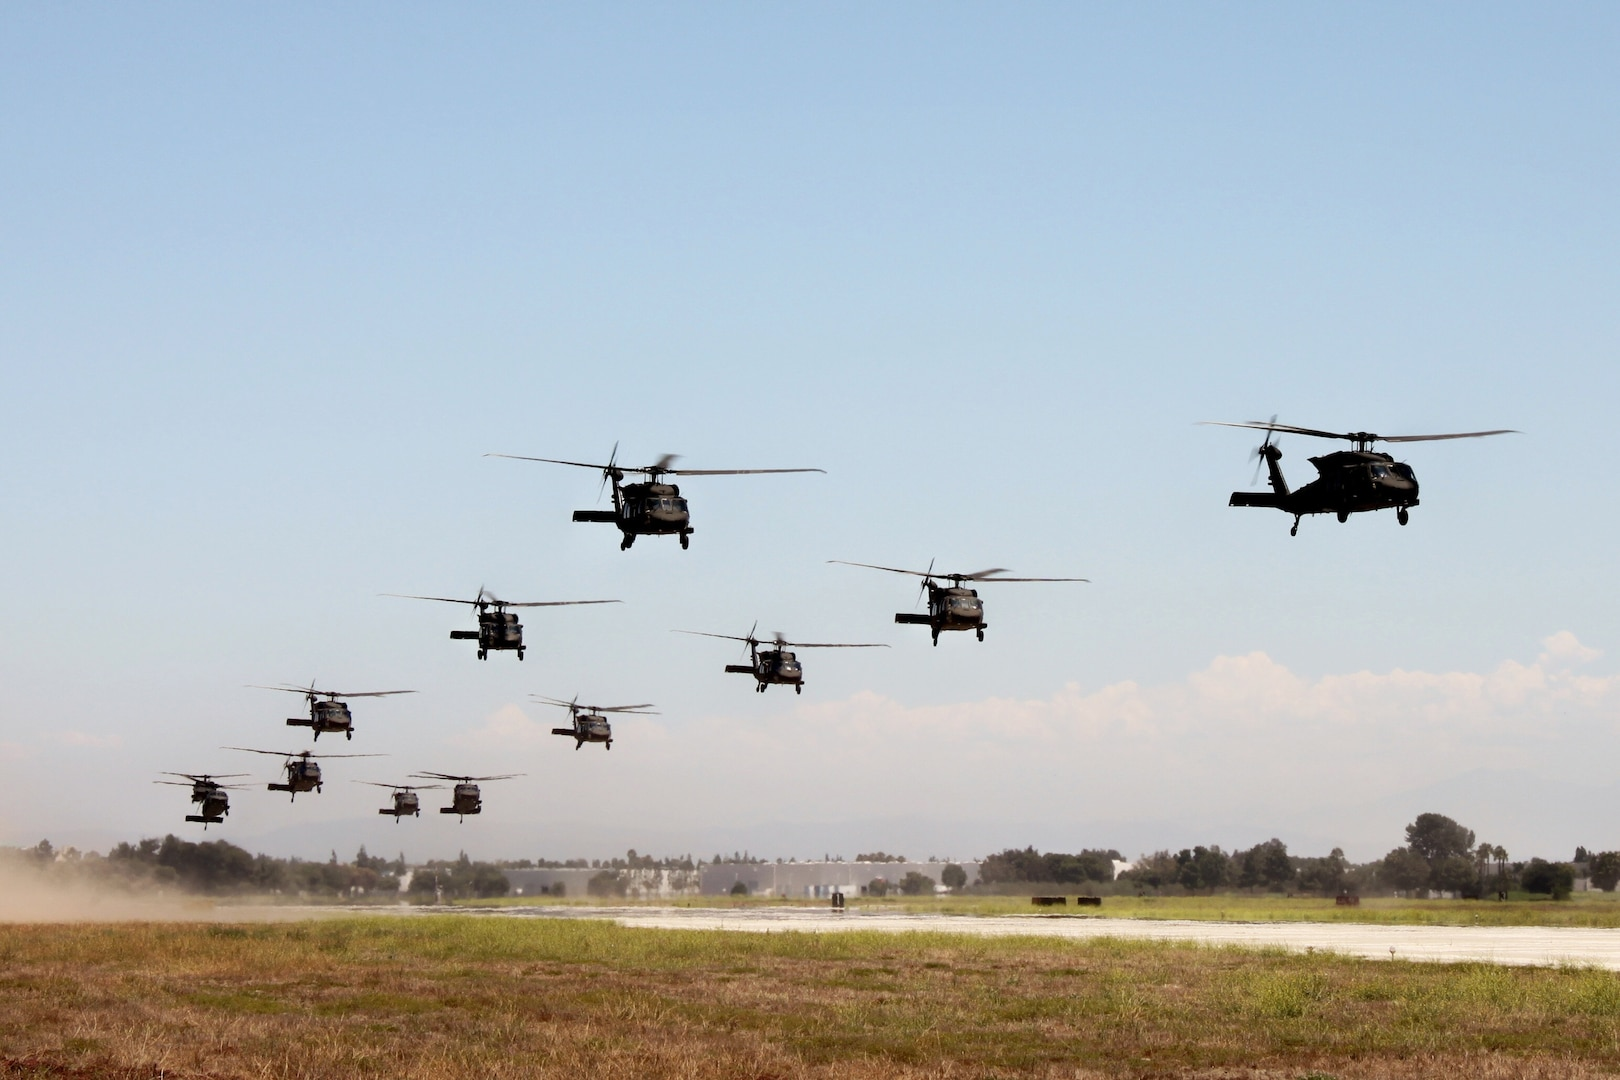 12 helicopters take off from an airfield in rapid succession.